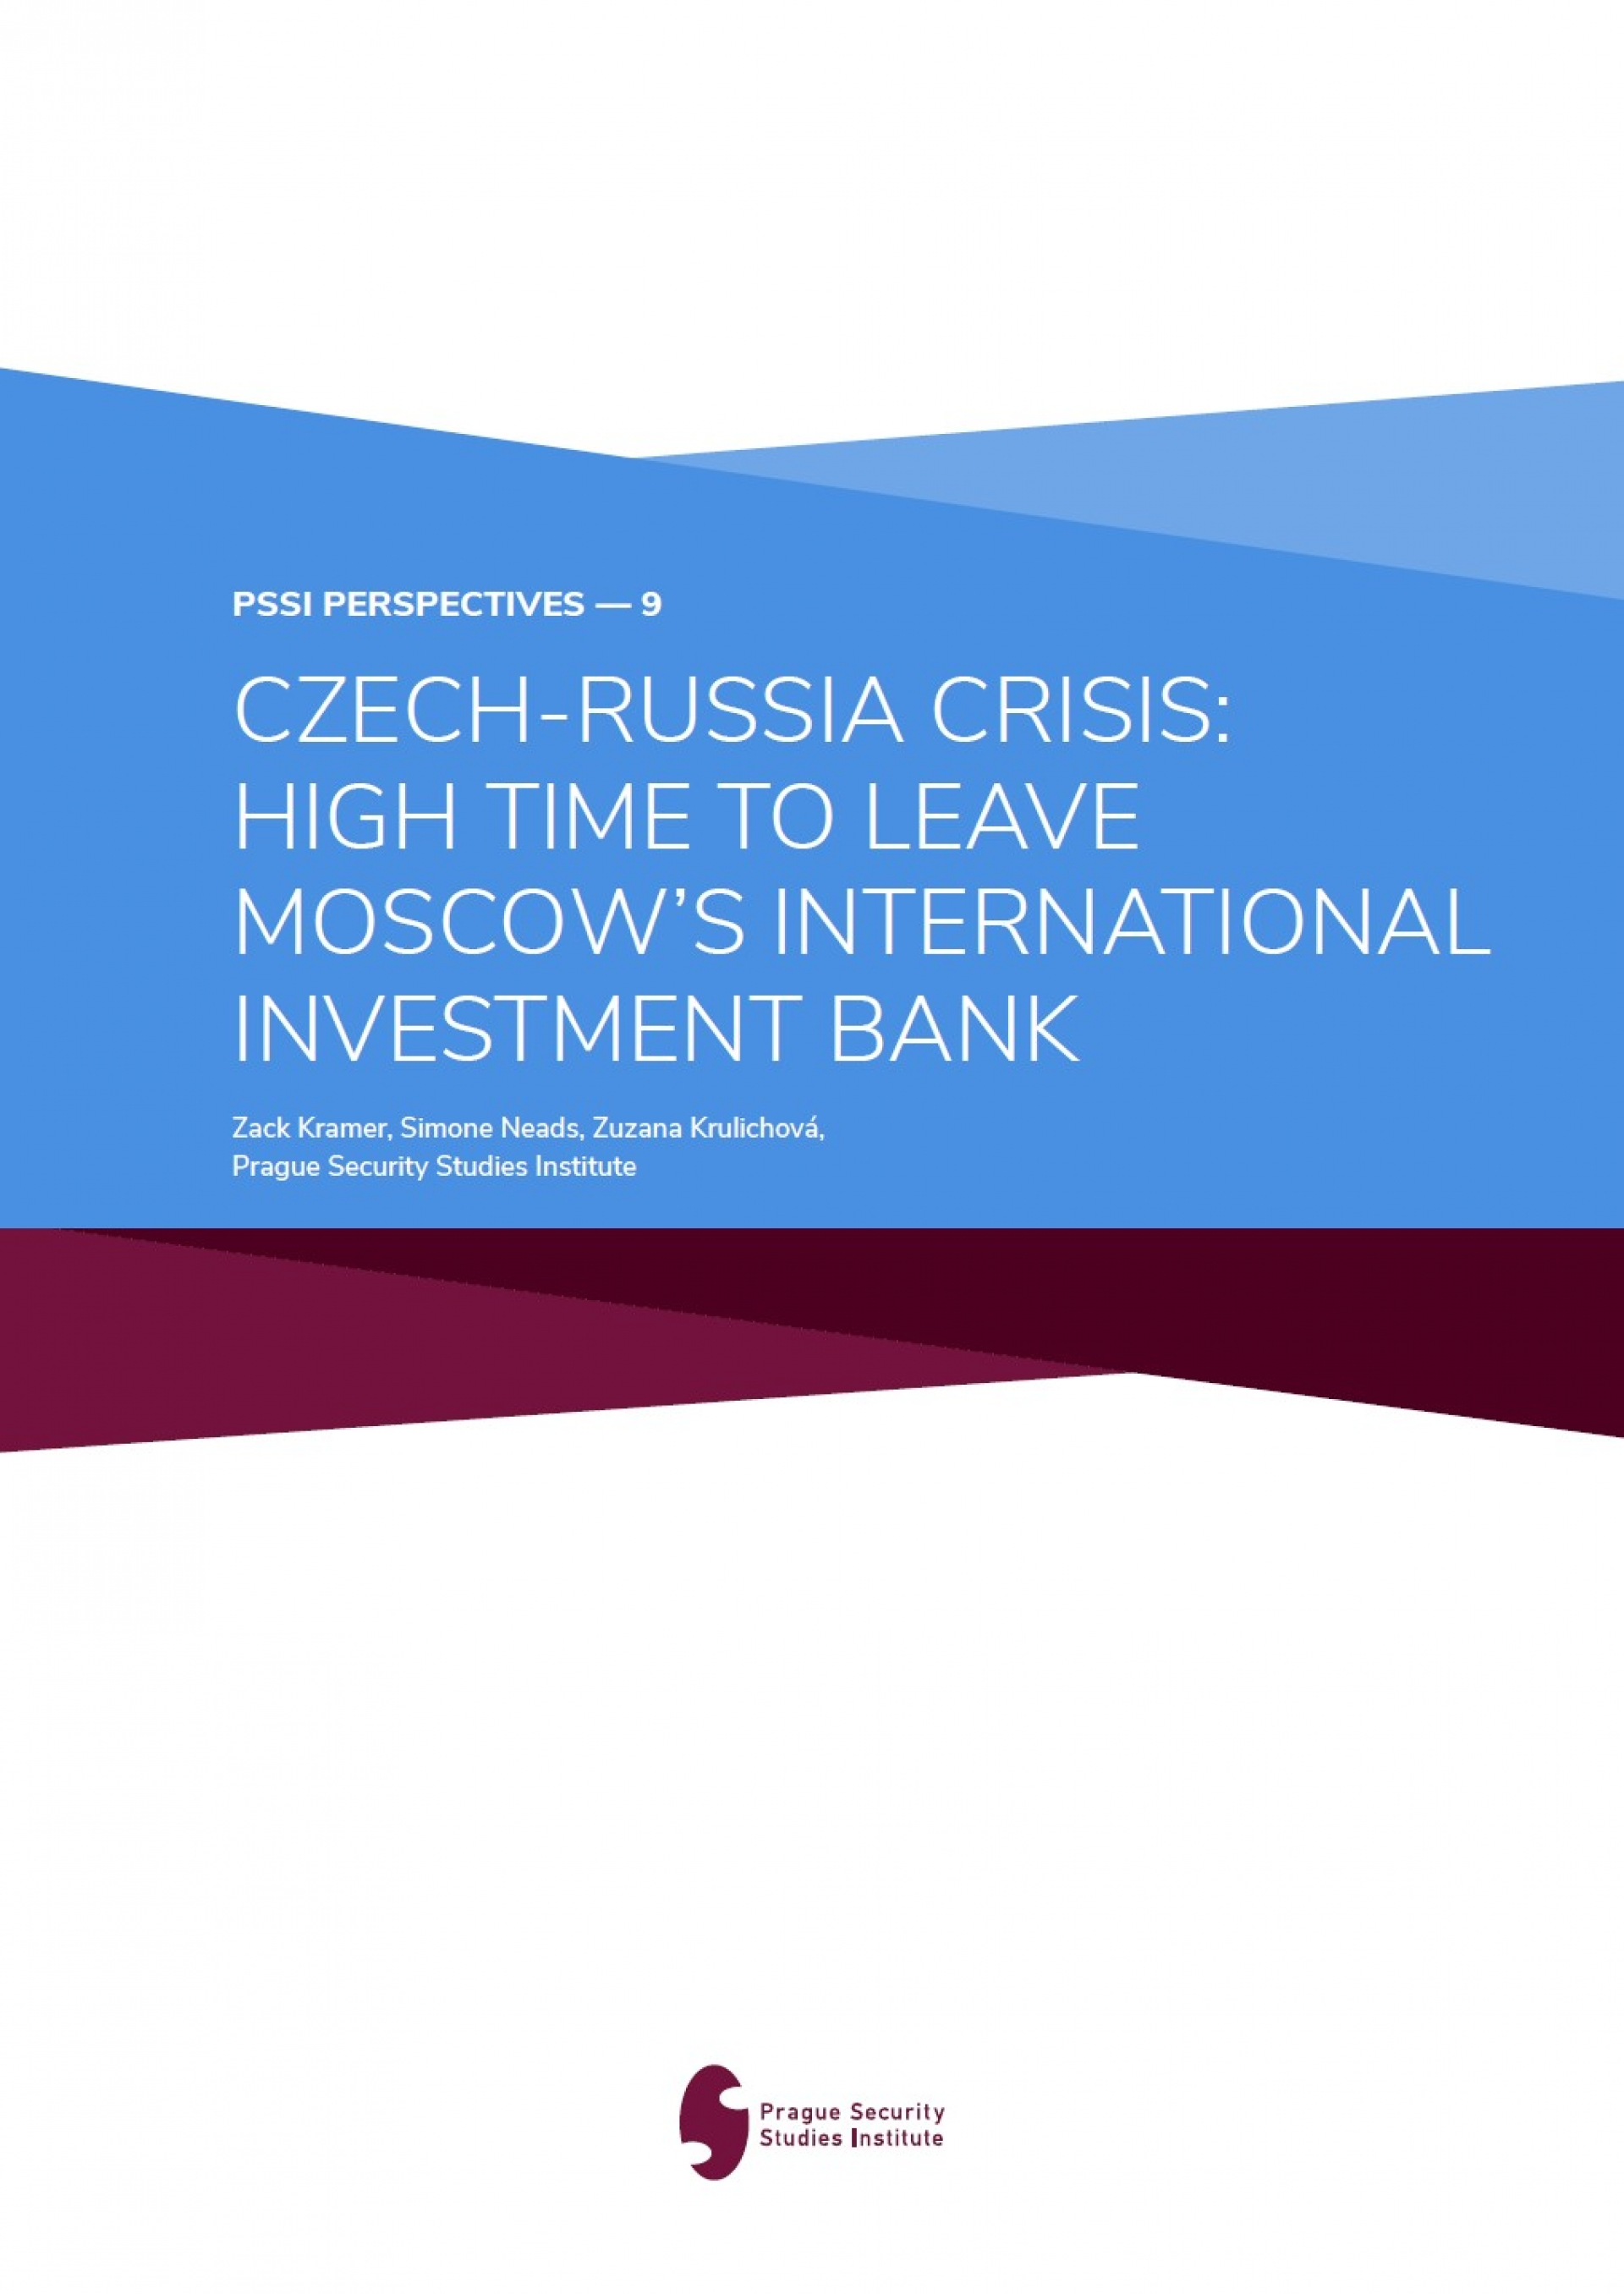 Czech-Russian Crisis High Time to Leave Moscow